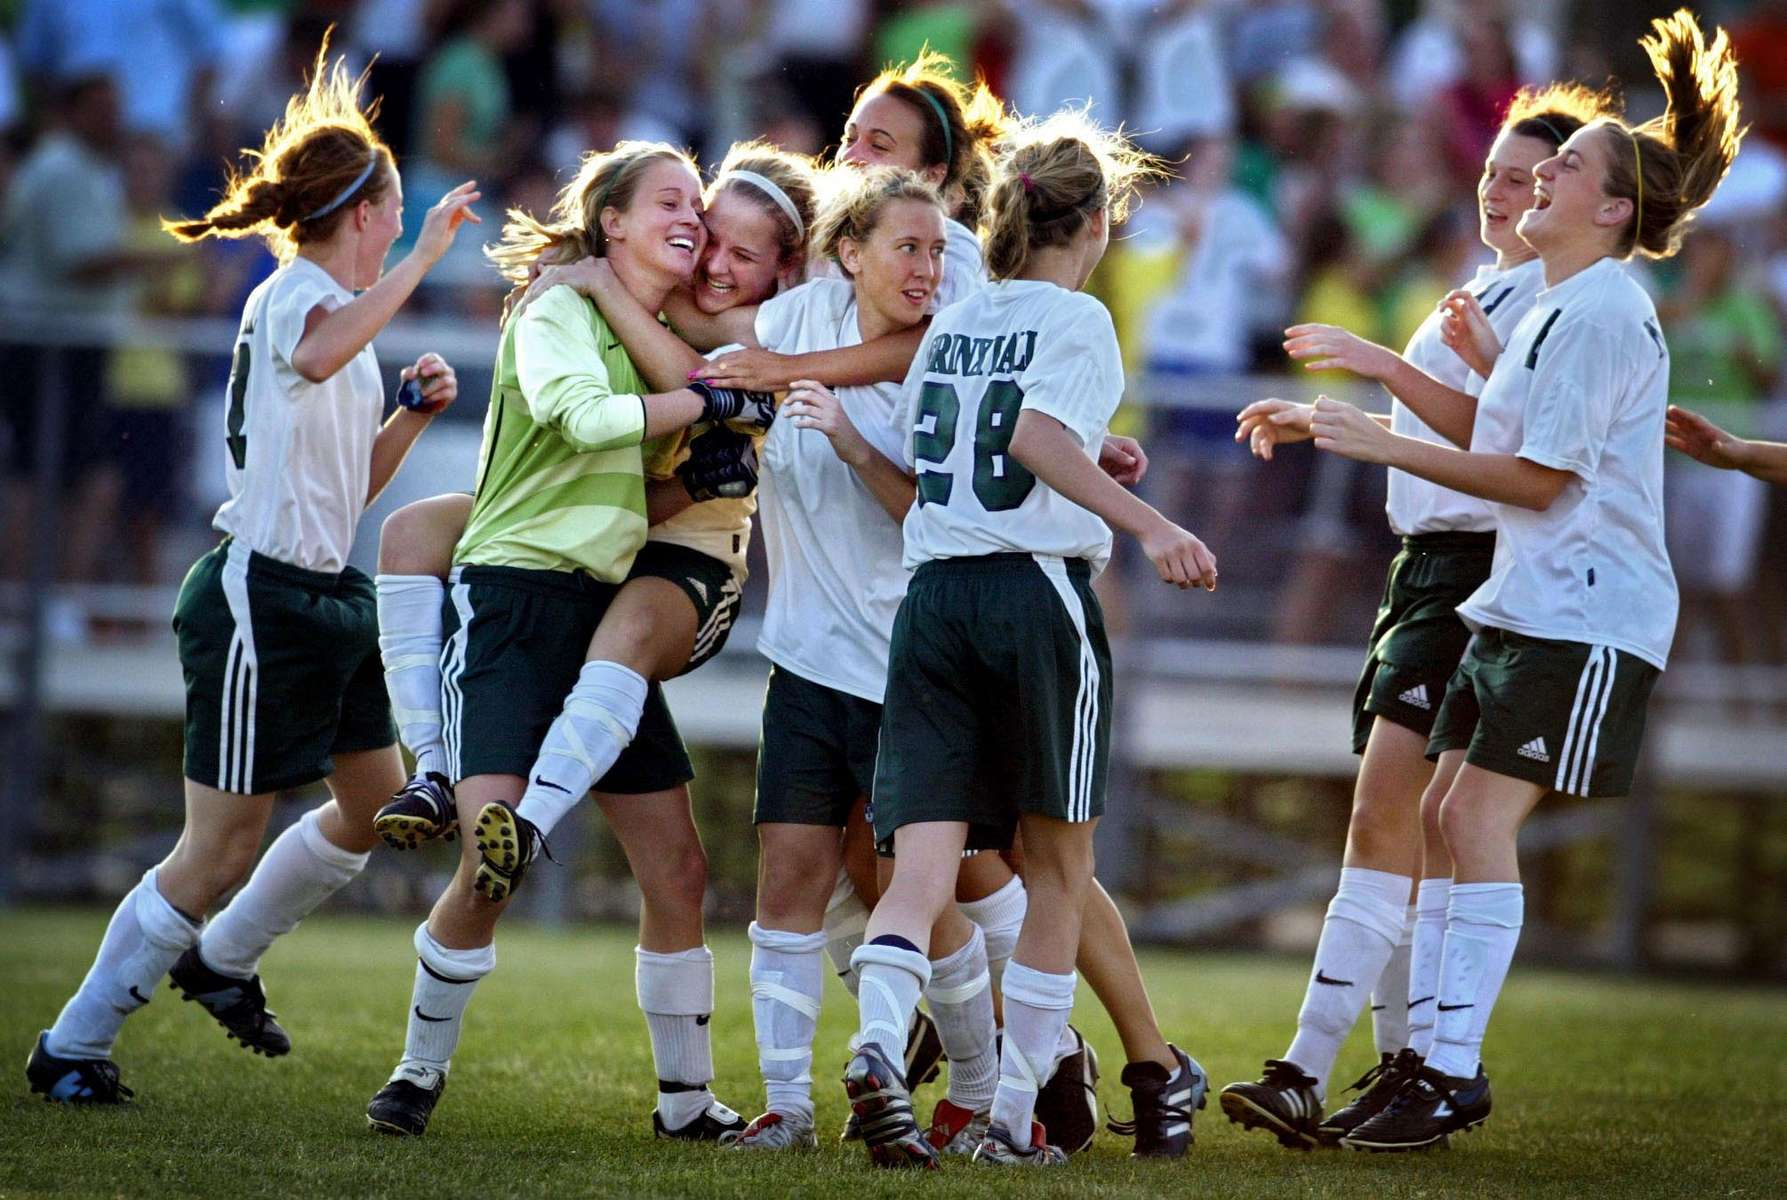 Nerinx Hall girls soccer team members celebrate their overtime penalty kick shootout win over Cor Jesu in St. Louis County, Mo. on Thursday May 19, 2005.